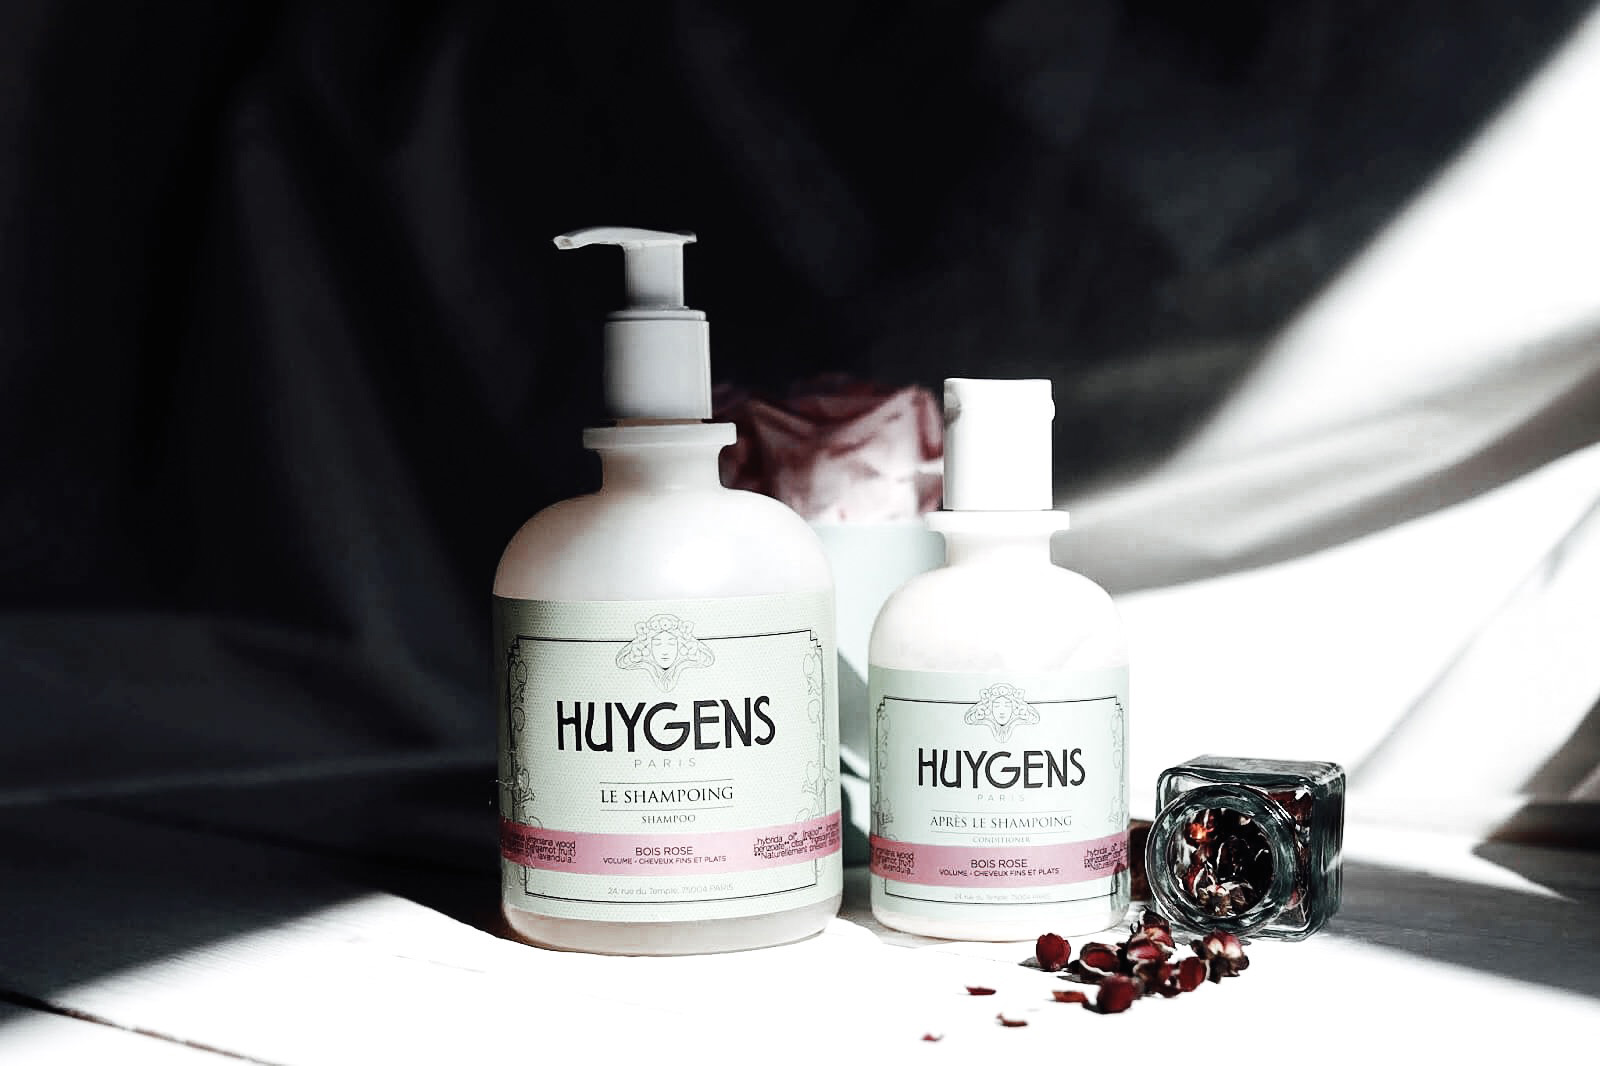 huygens-soins-capillaires-shampooing-apres-shampooing-volume-avis-test-composition